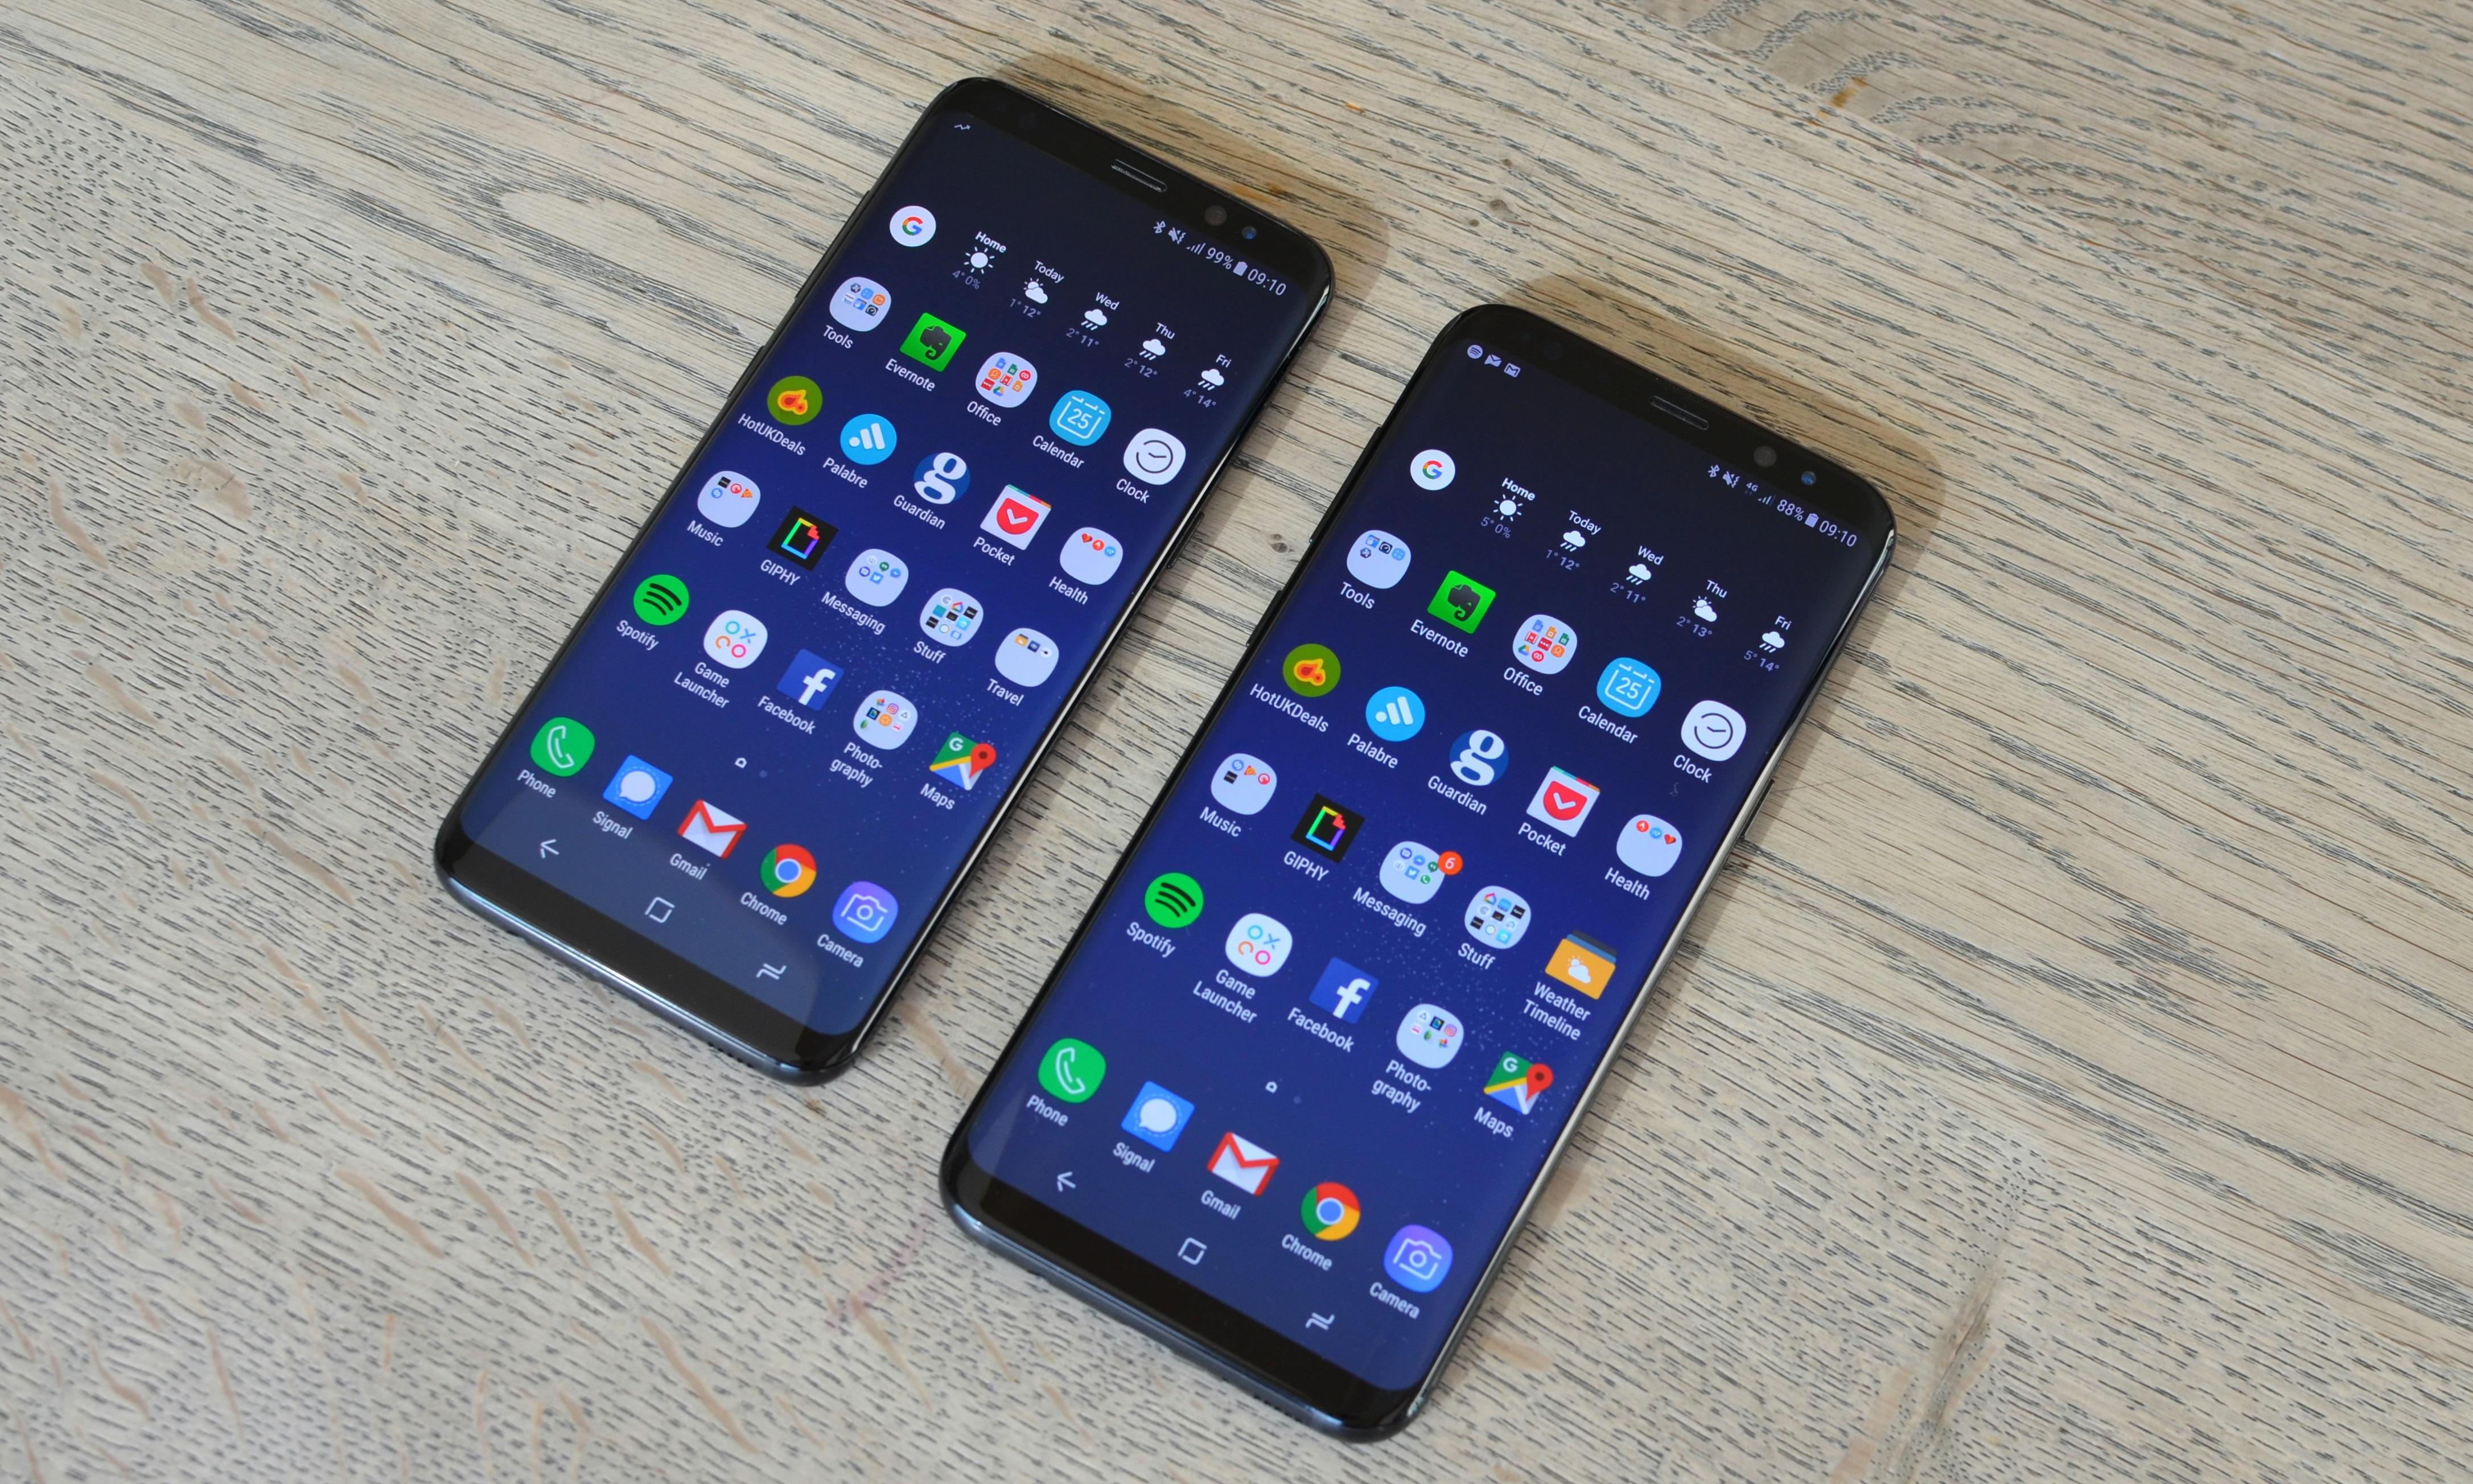 Samsung Galaxy S9: everything we think we know about the new smartphones